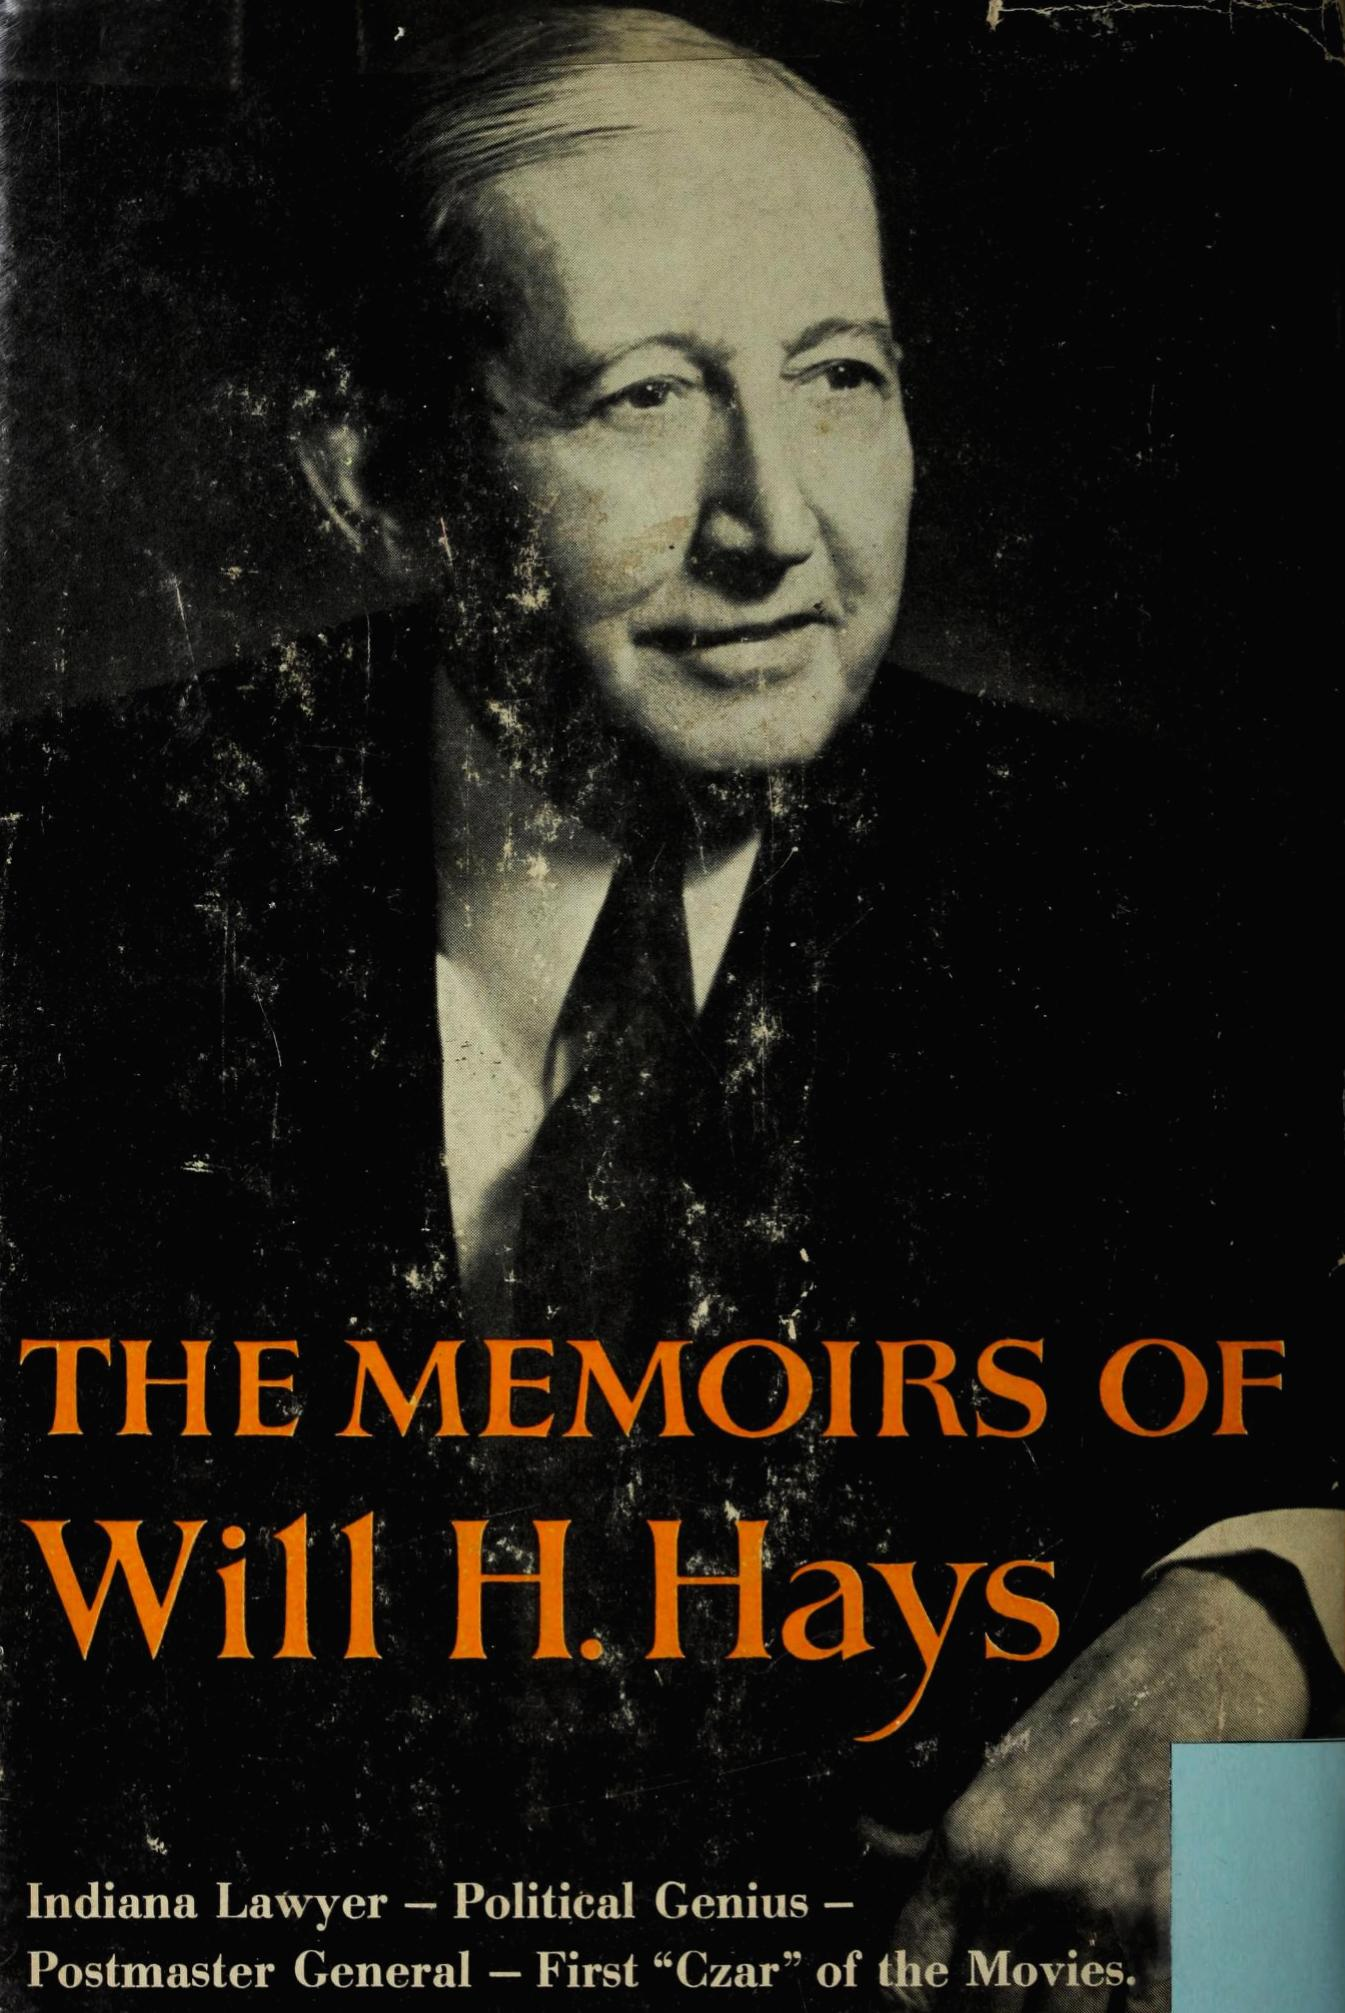 memoirs of will b. hays back cover 00a